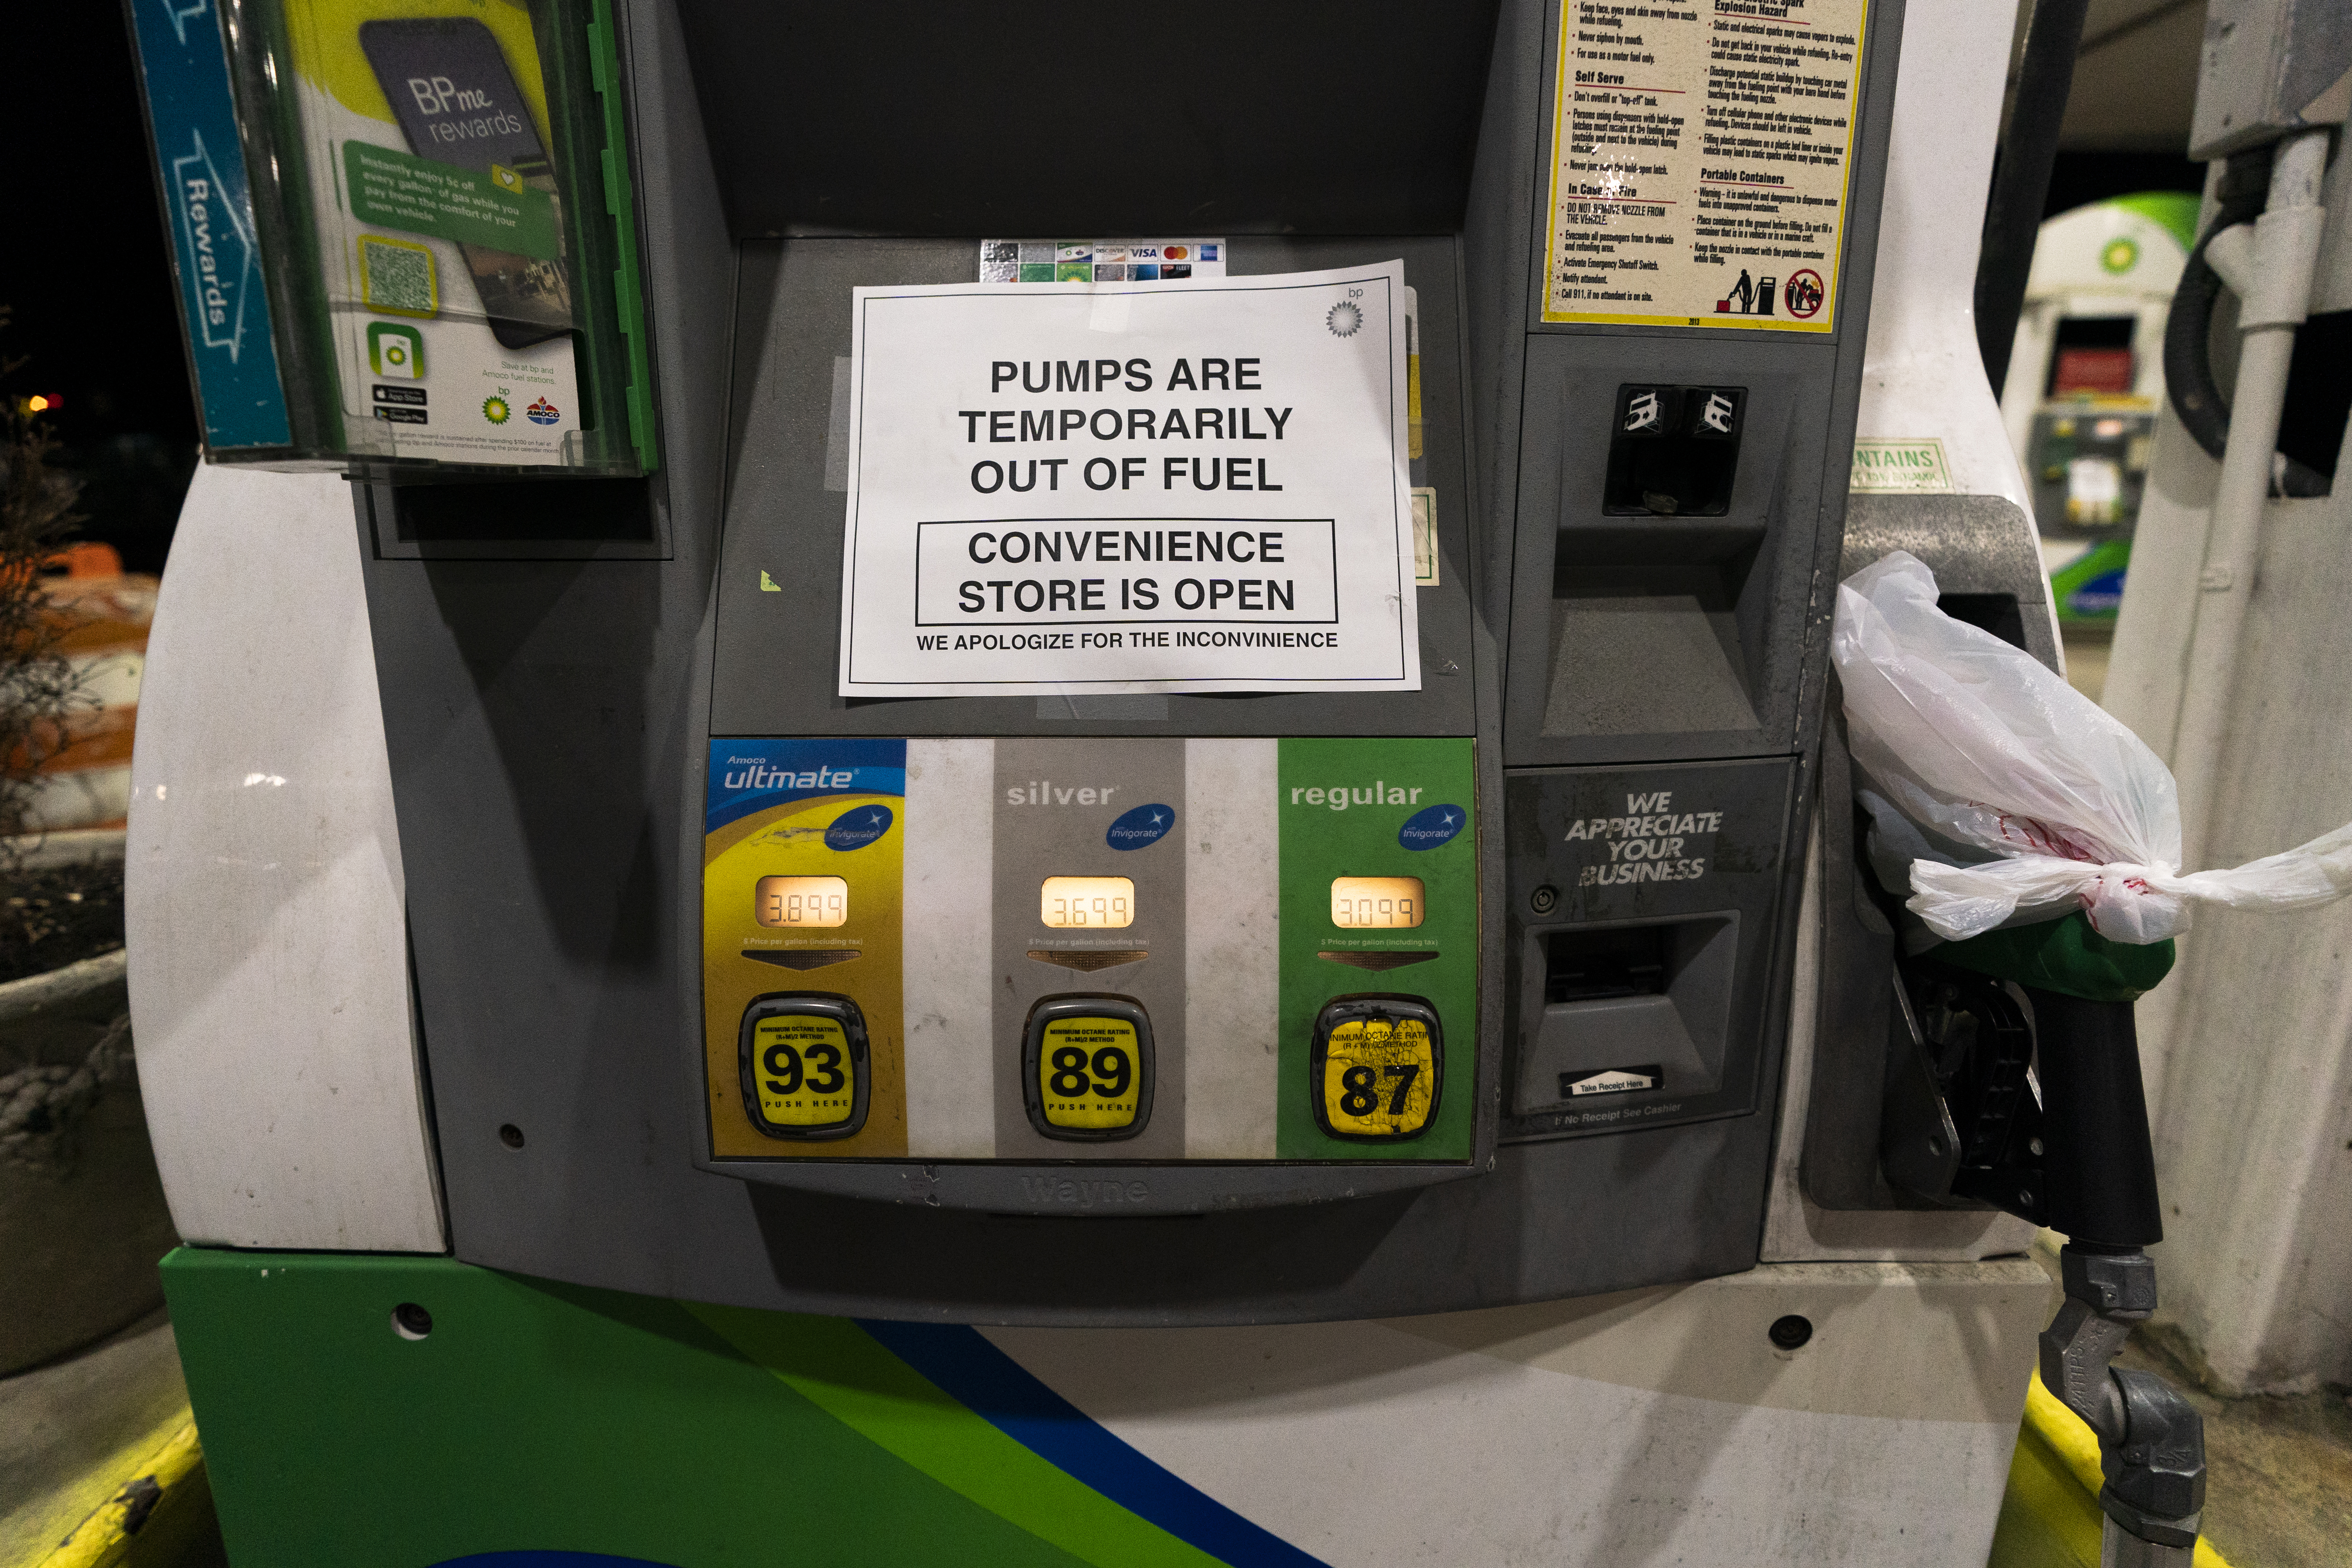 A gas pump at a gas station in Silver Spring, Md., is out of service, notifying customers they are out of fuel, late Thursday, May 13, 2021.